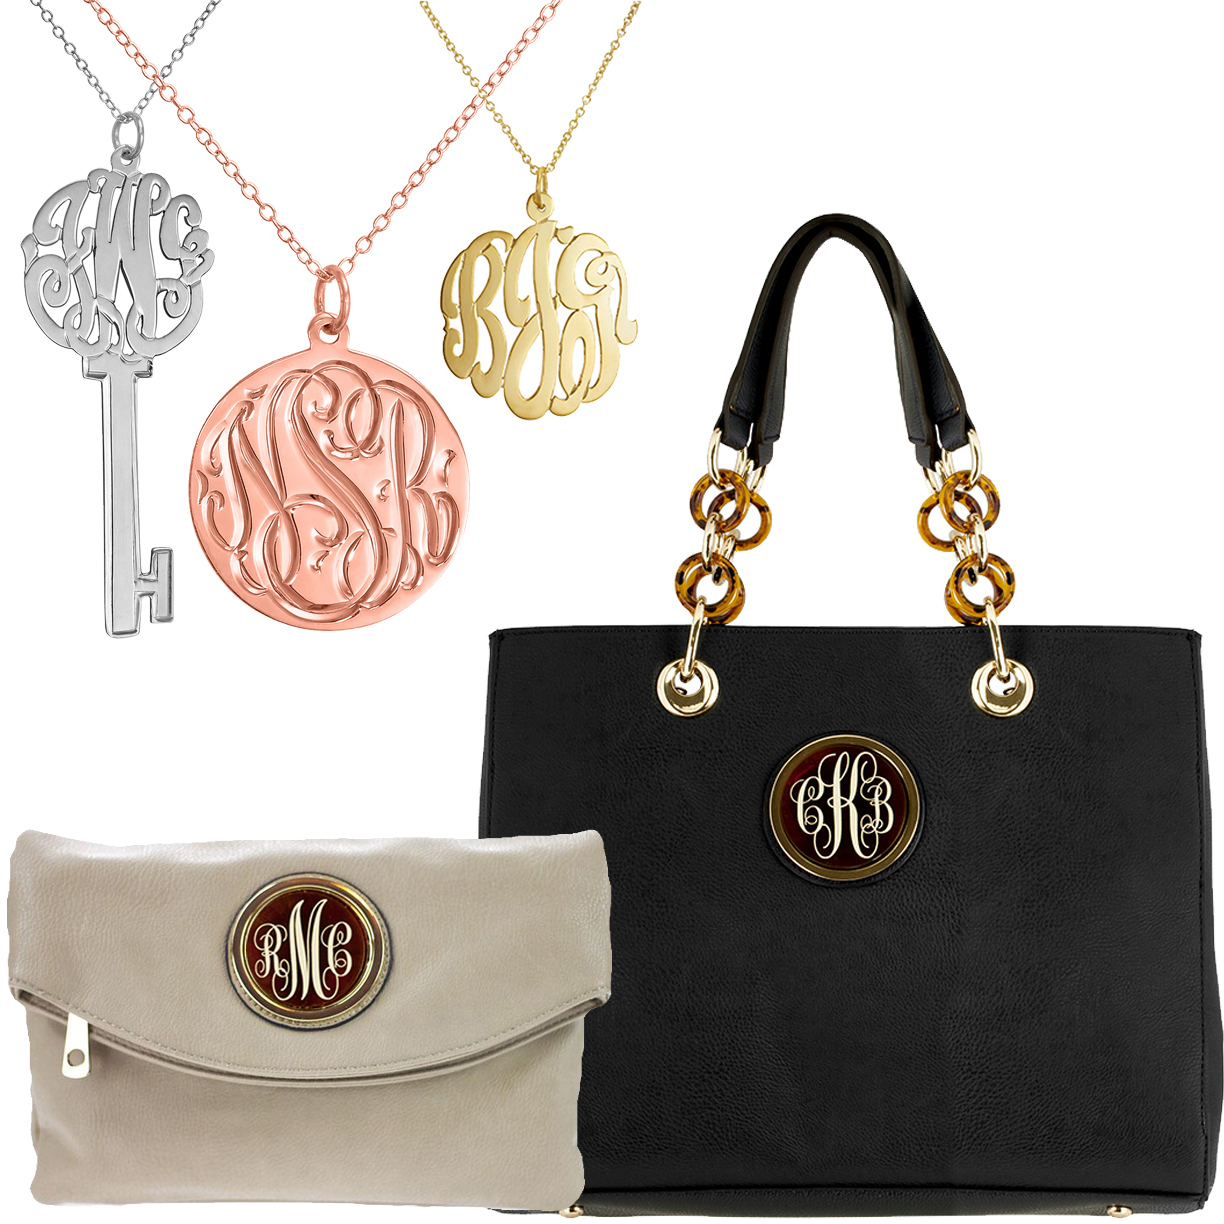 Initial-Reaction-monogrammed-jewelry-purses-bags-accessories.jpg